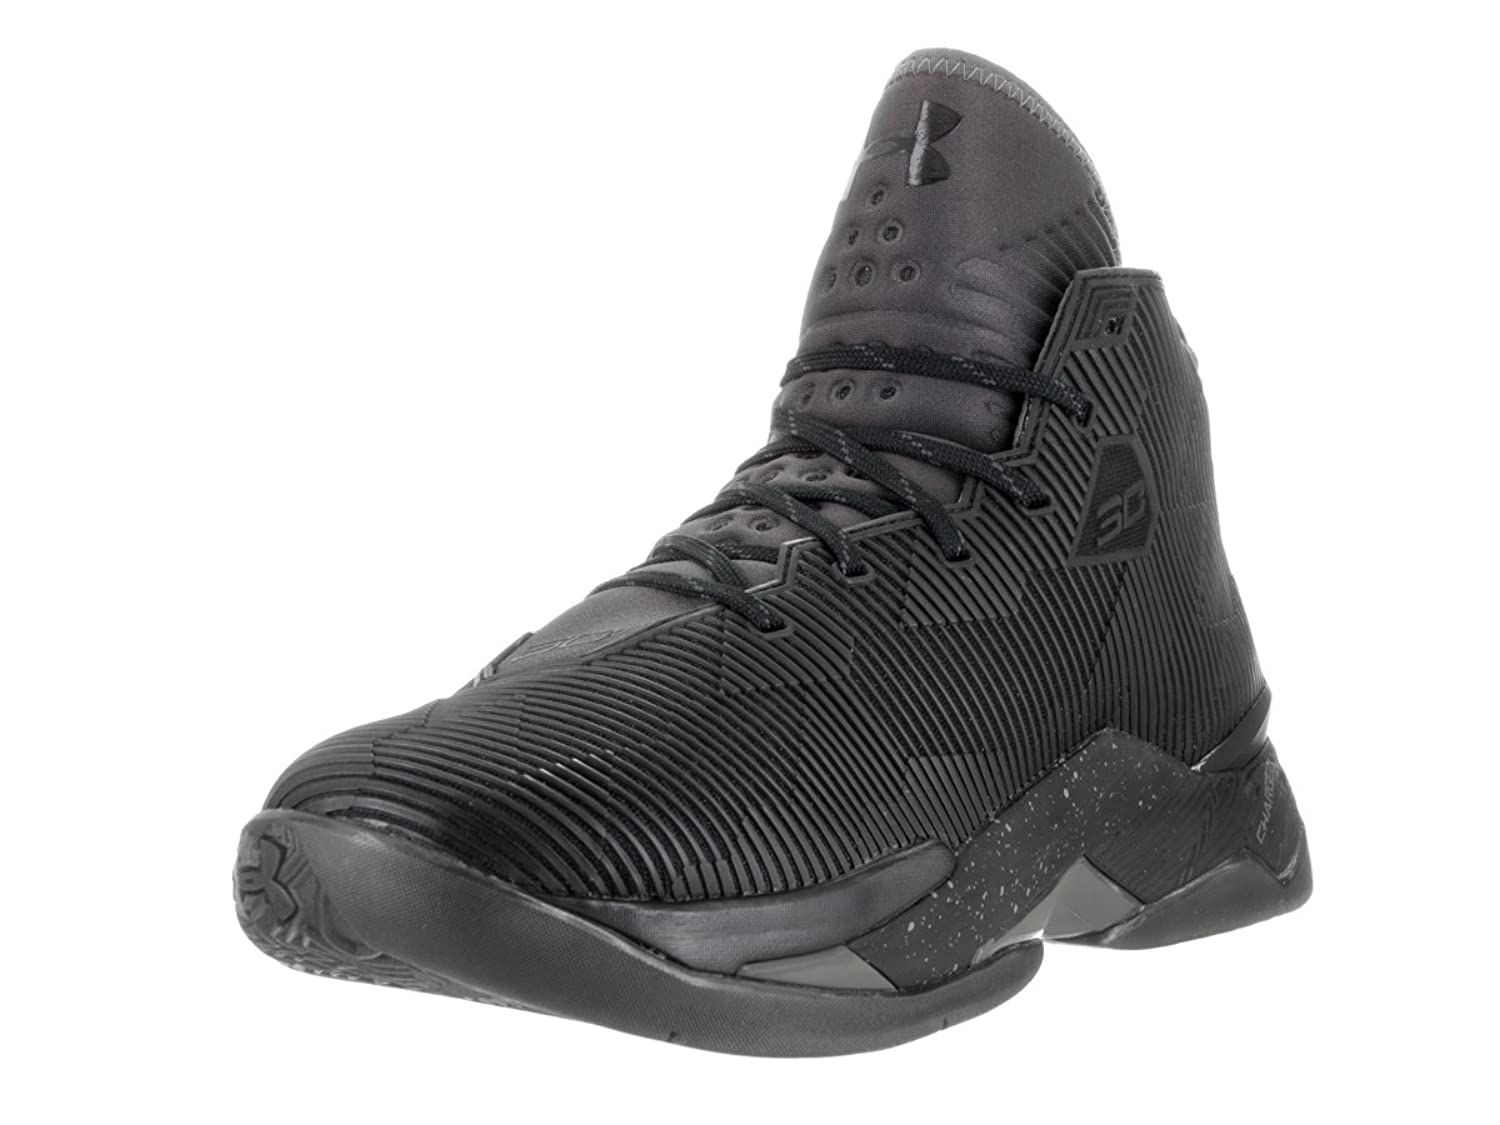 Under Armour Basketball Sko Amazon NpHX6yaiLX